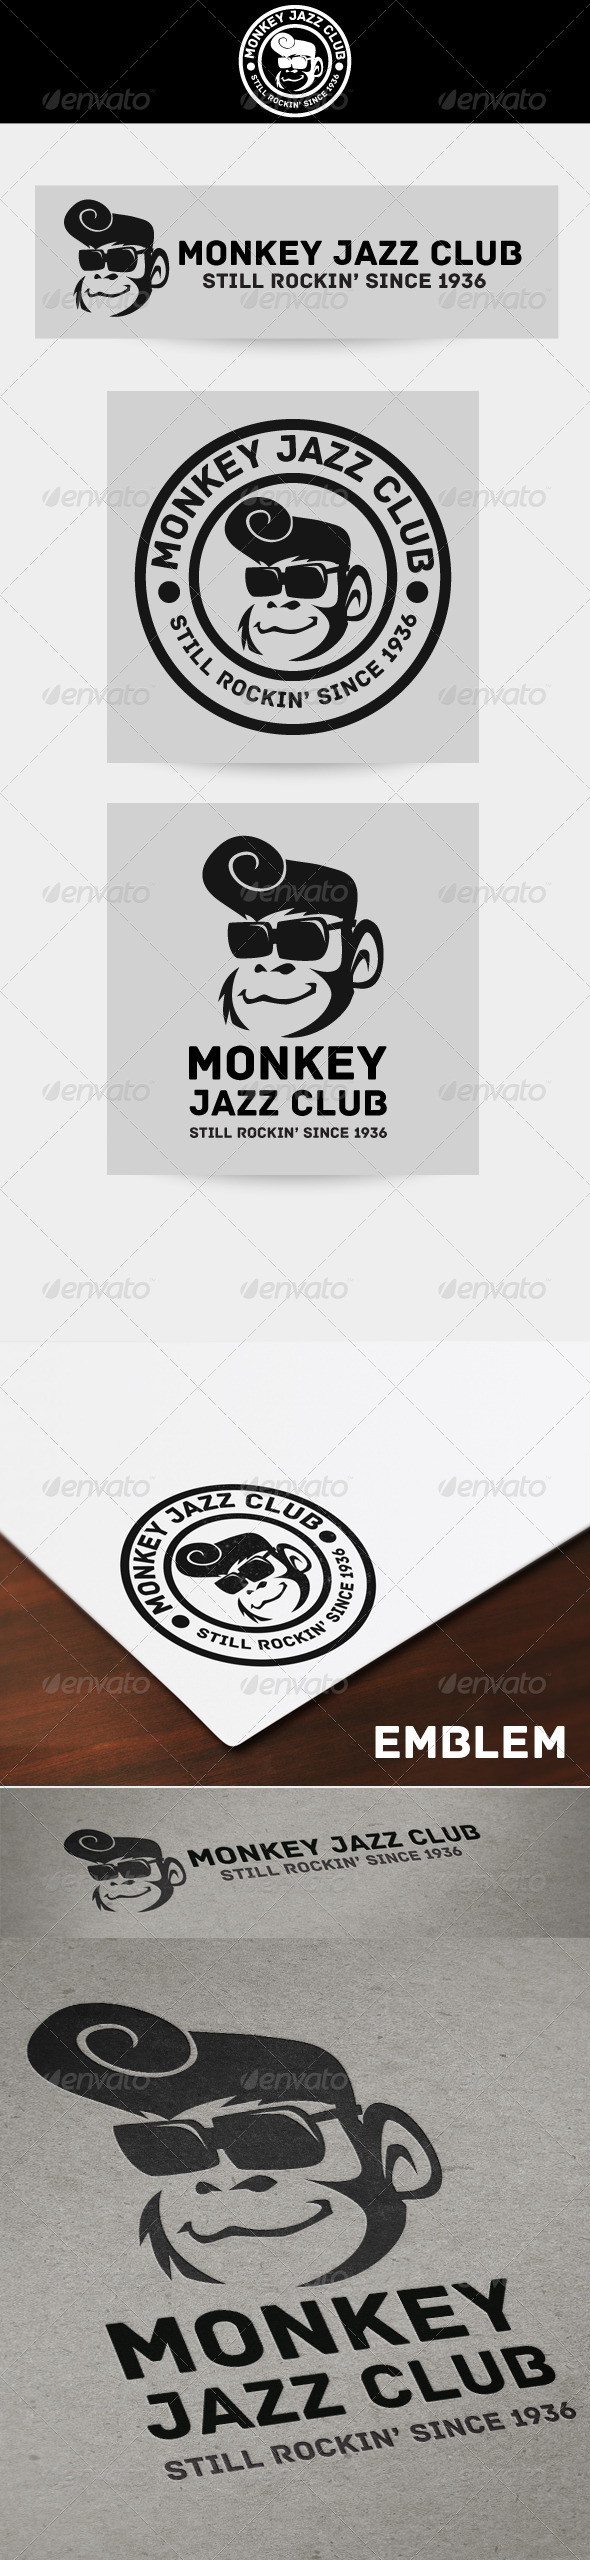 GraphicRiver Monkey Jazz Club Emblem Vertical Horizontal Logo 4438047